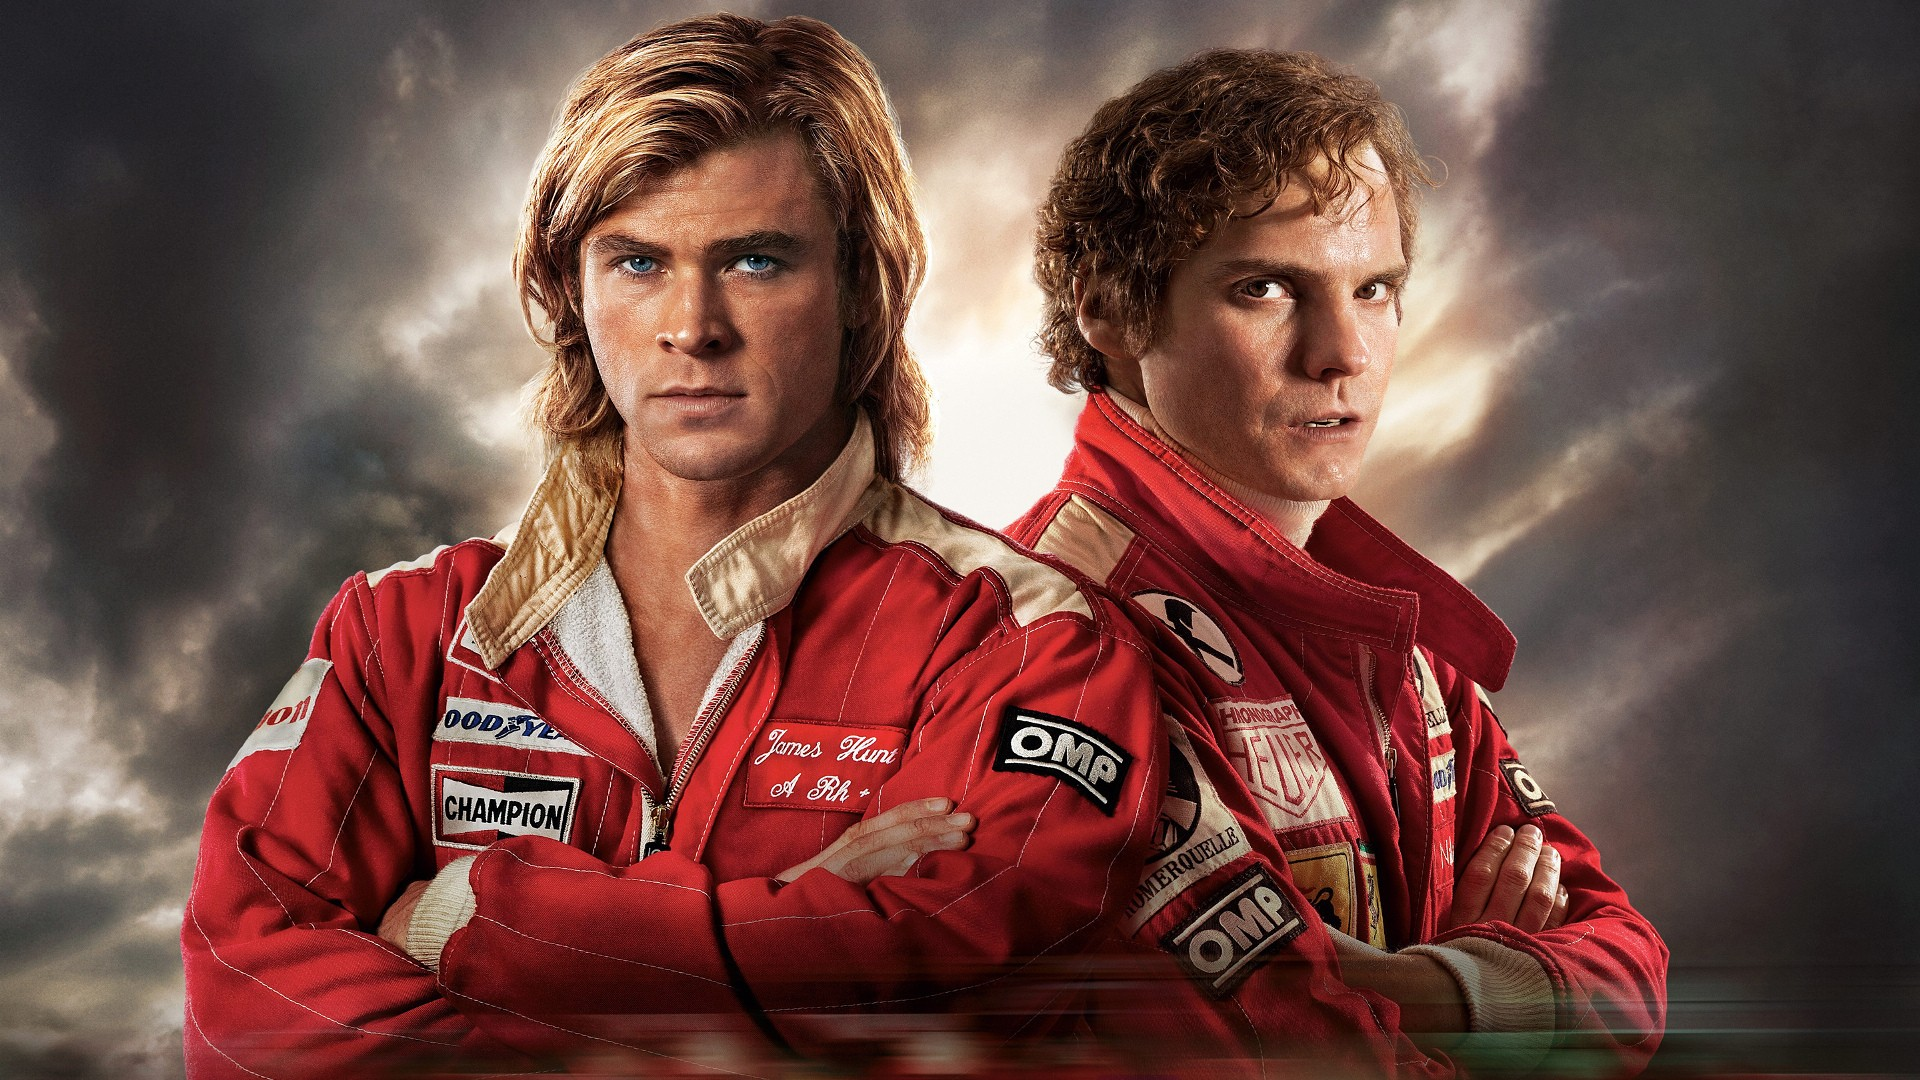 Rush (2013) | FilmFed - Movies. Ratings. Reviews. and Trailers